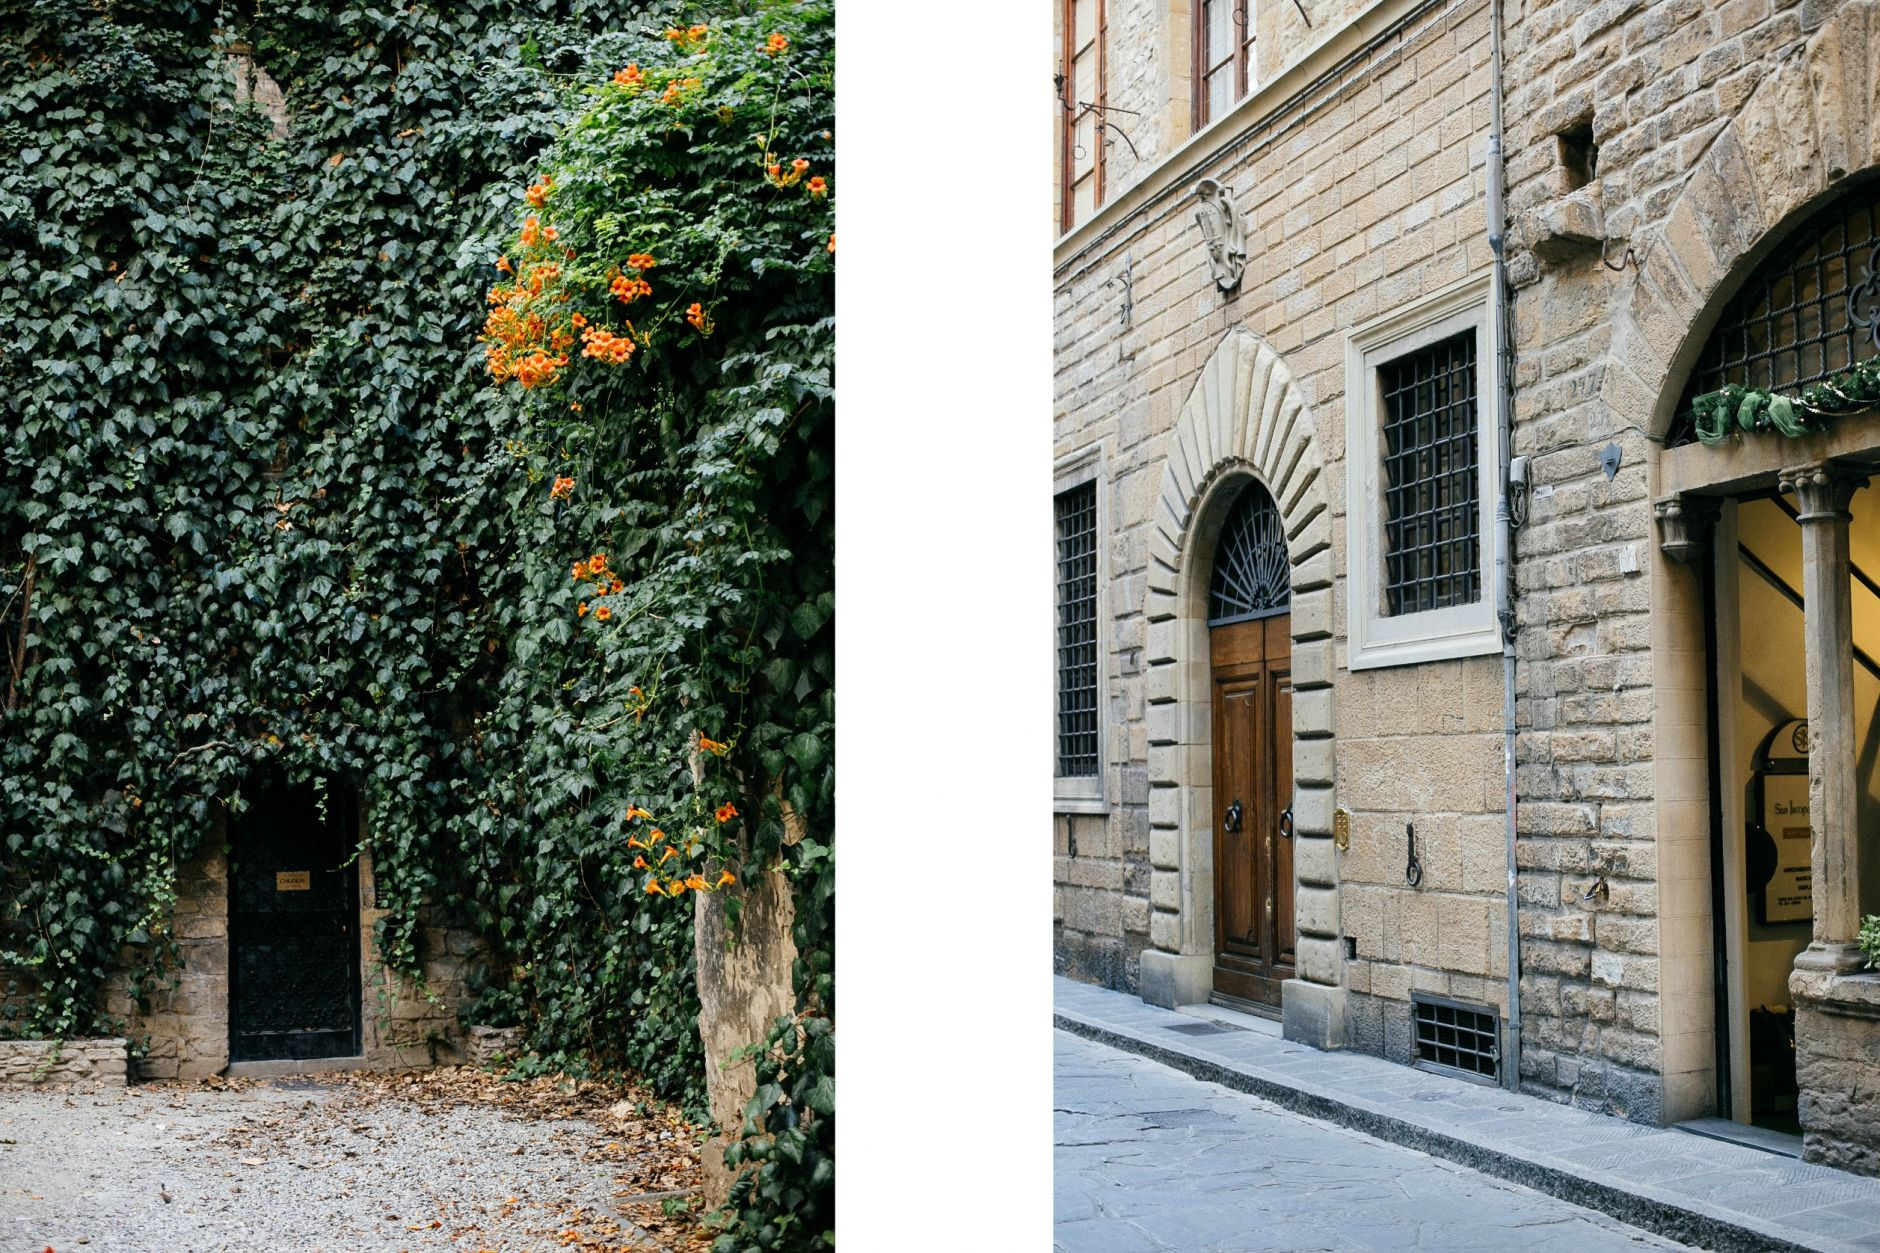 FOUR PERFECT DAYS IN FLORENCE - DISI COUTUREDISI COUTURE